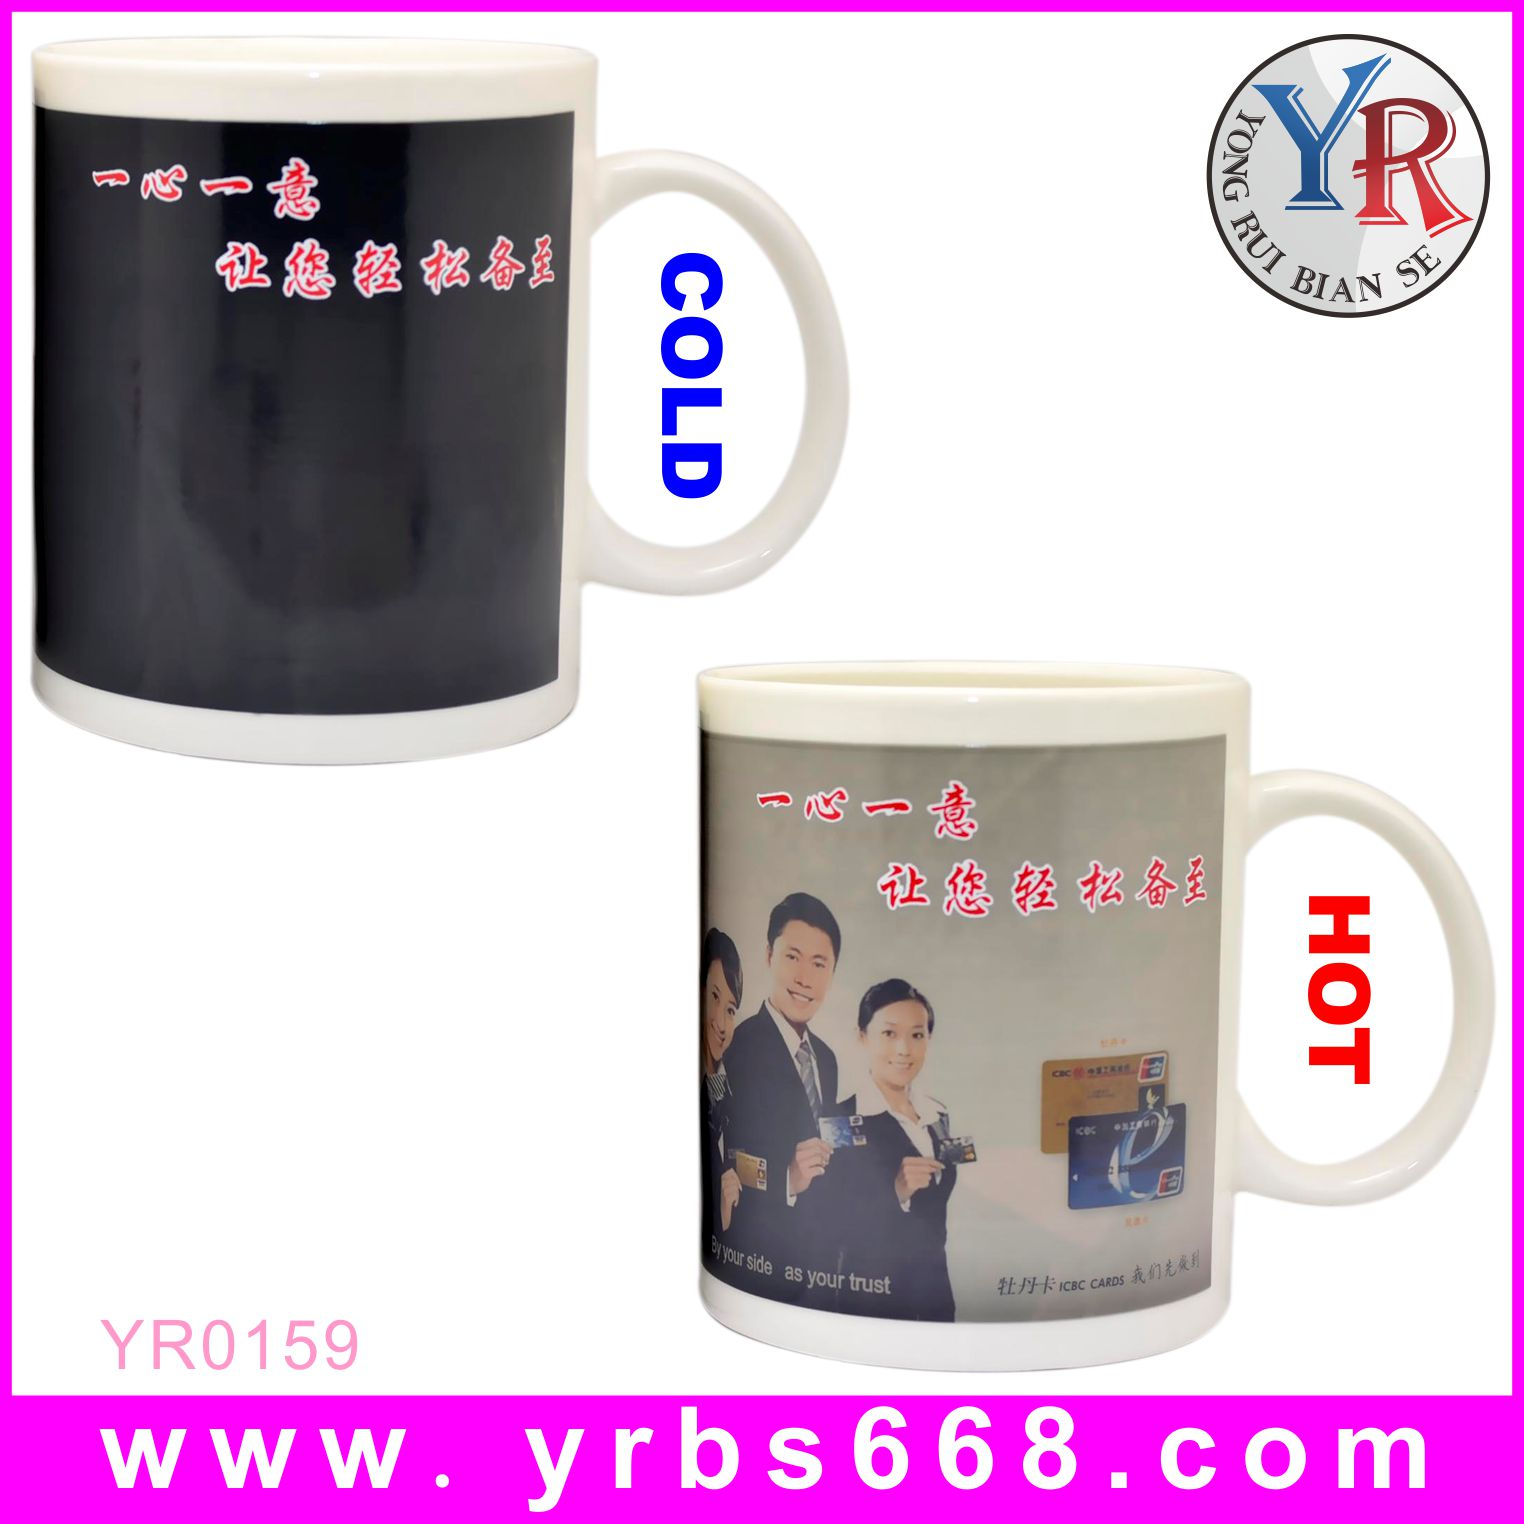 Print logo color changing mugs police promotional items /promotional gift items for police